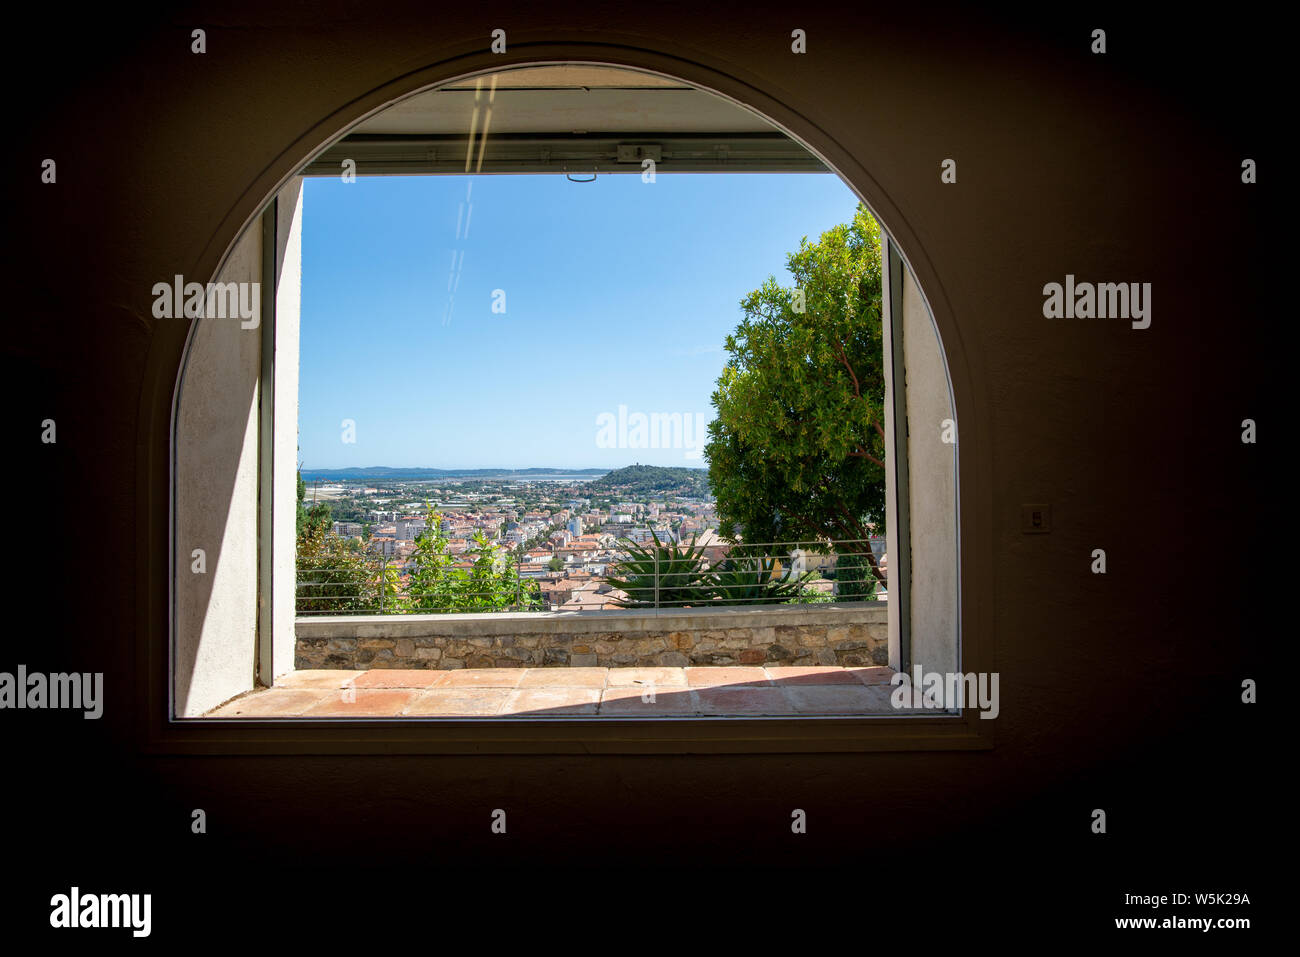 HYERES, FRANCE - JULY 28, 2019: View on the Mediterranean sea through a window of the villa Noailles, designed by the architect Mallet-Stevens, Hyeres Stock Photo